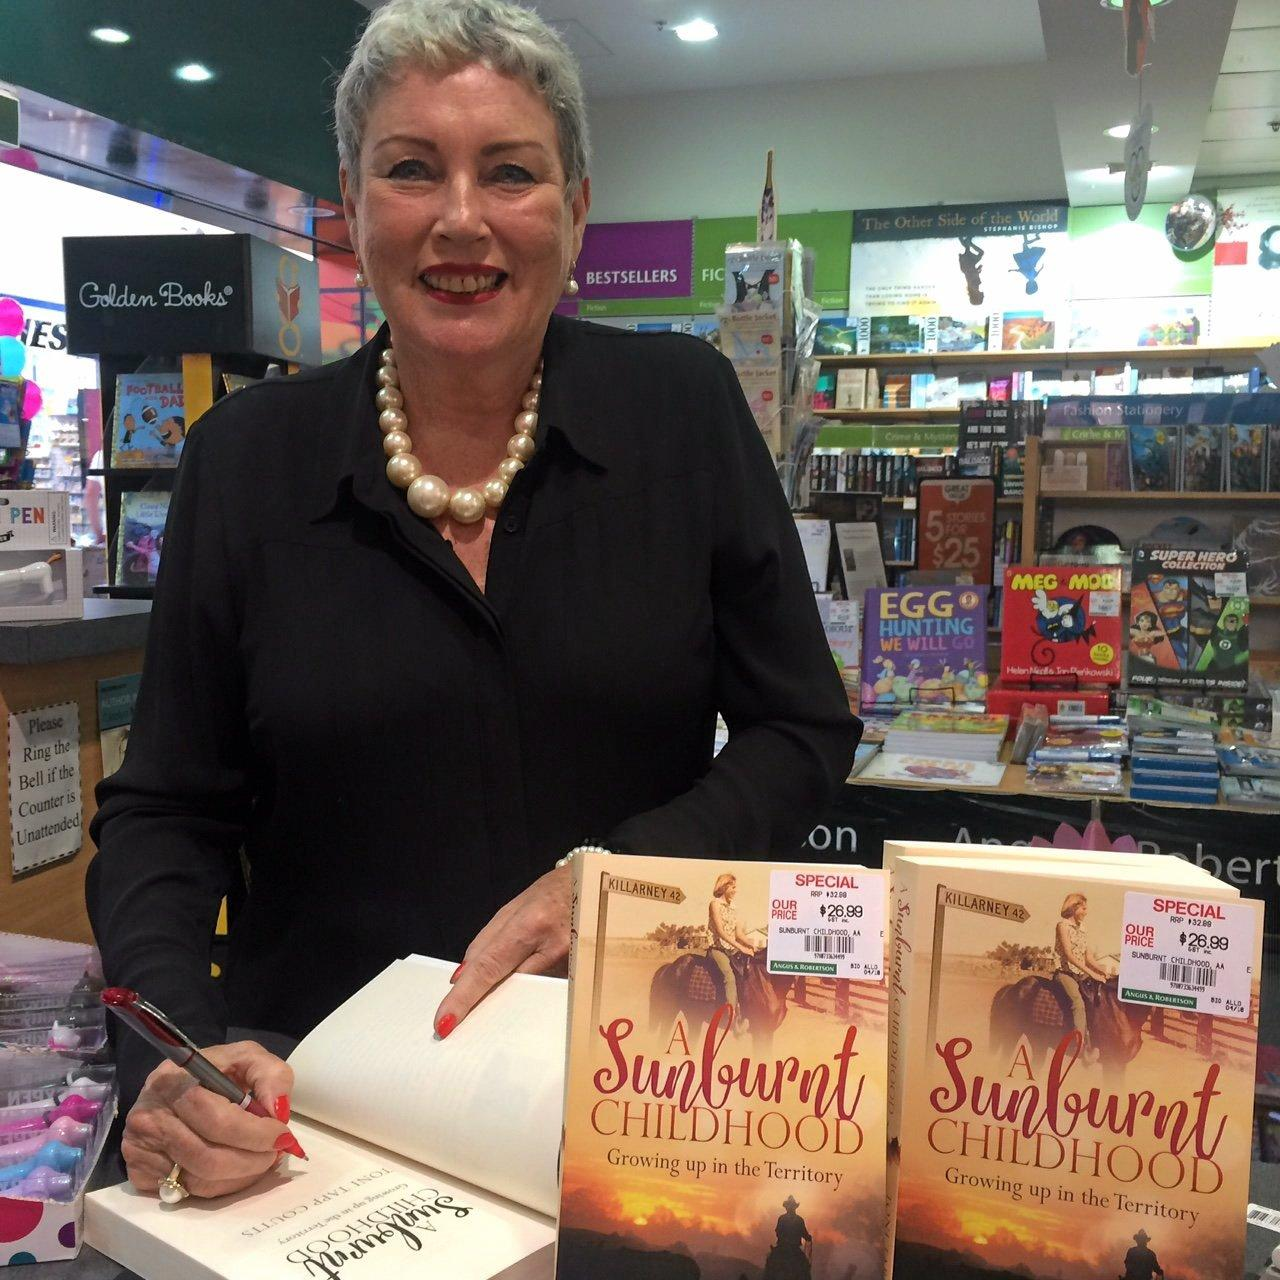 Toni Tapp Coutts at one of her many book signings so far following the release of her book A Sunburnt Childhood.